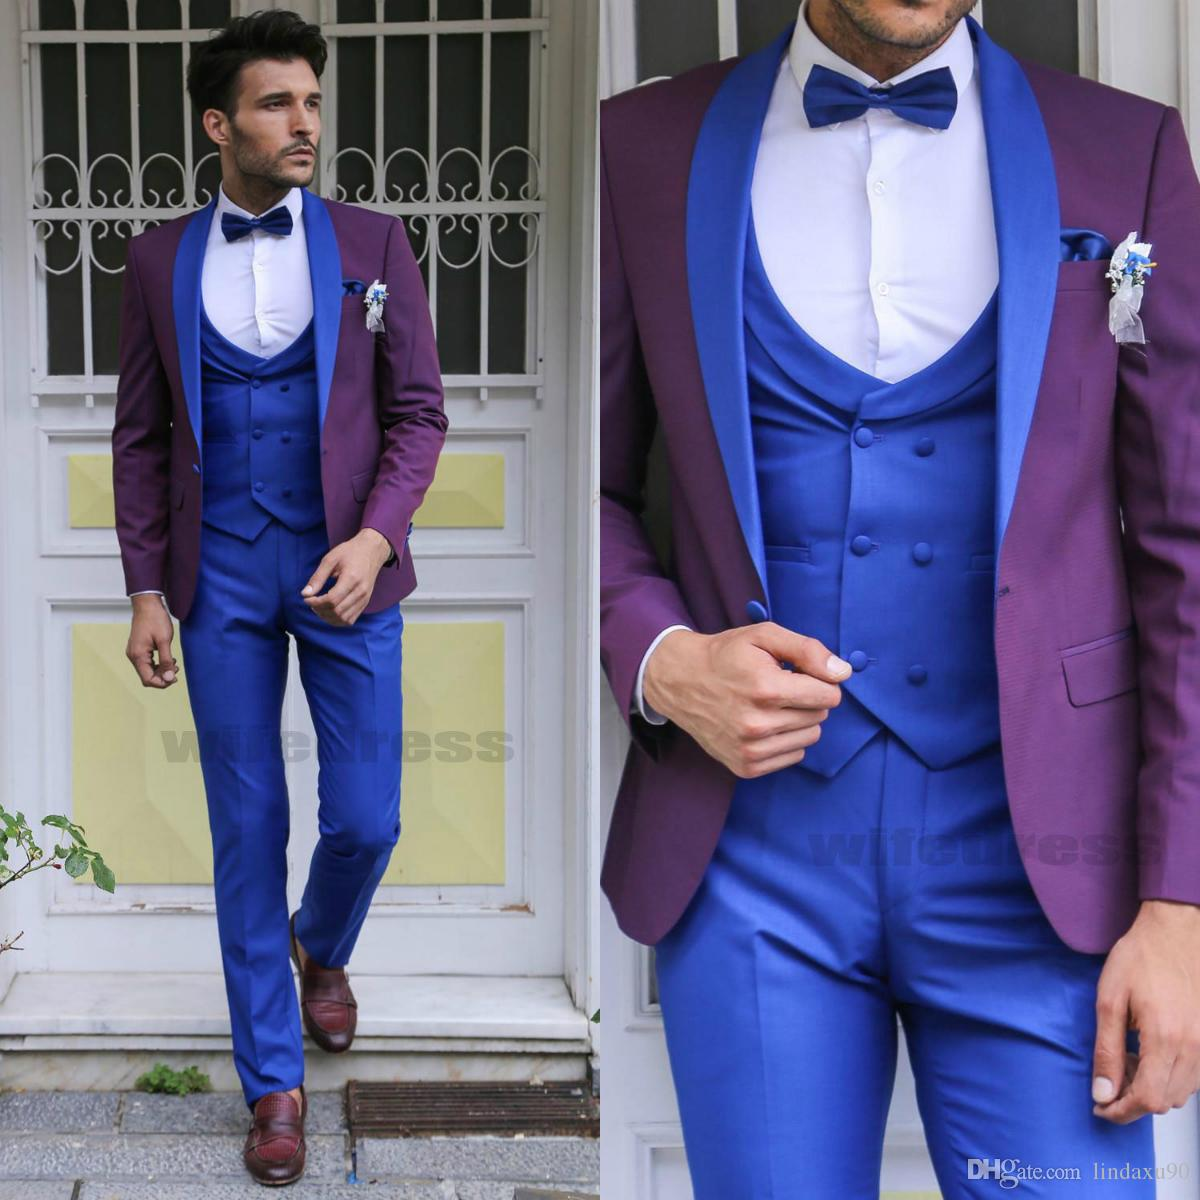 Fashion Wedding Tuxedos Bride Groom Suits For Men Blue And Purple Formal  Groom Tuxedos Lapel Jacket+Pants+Tie+Vest Mens Wedding Suit Summer Suits  For